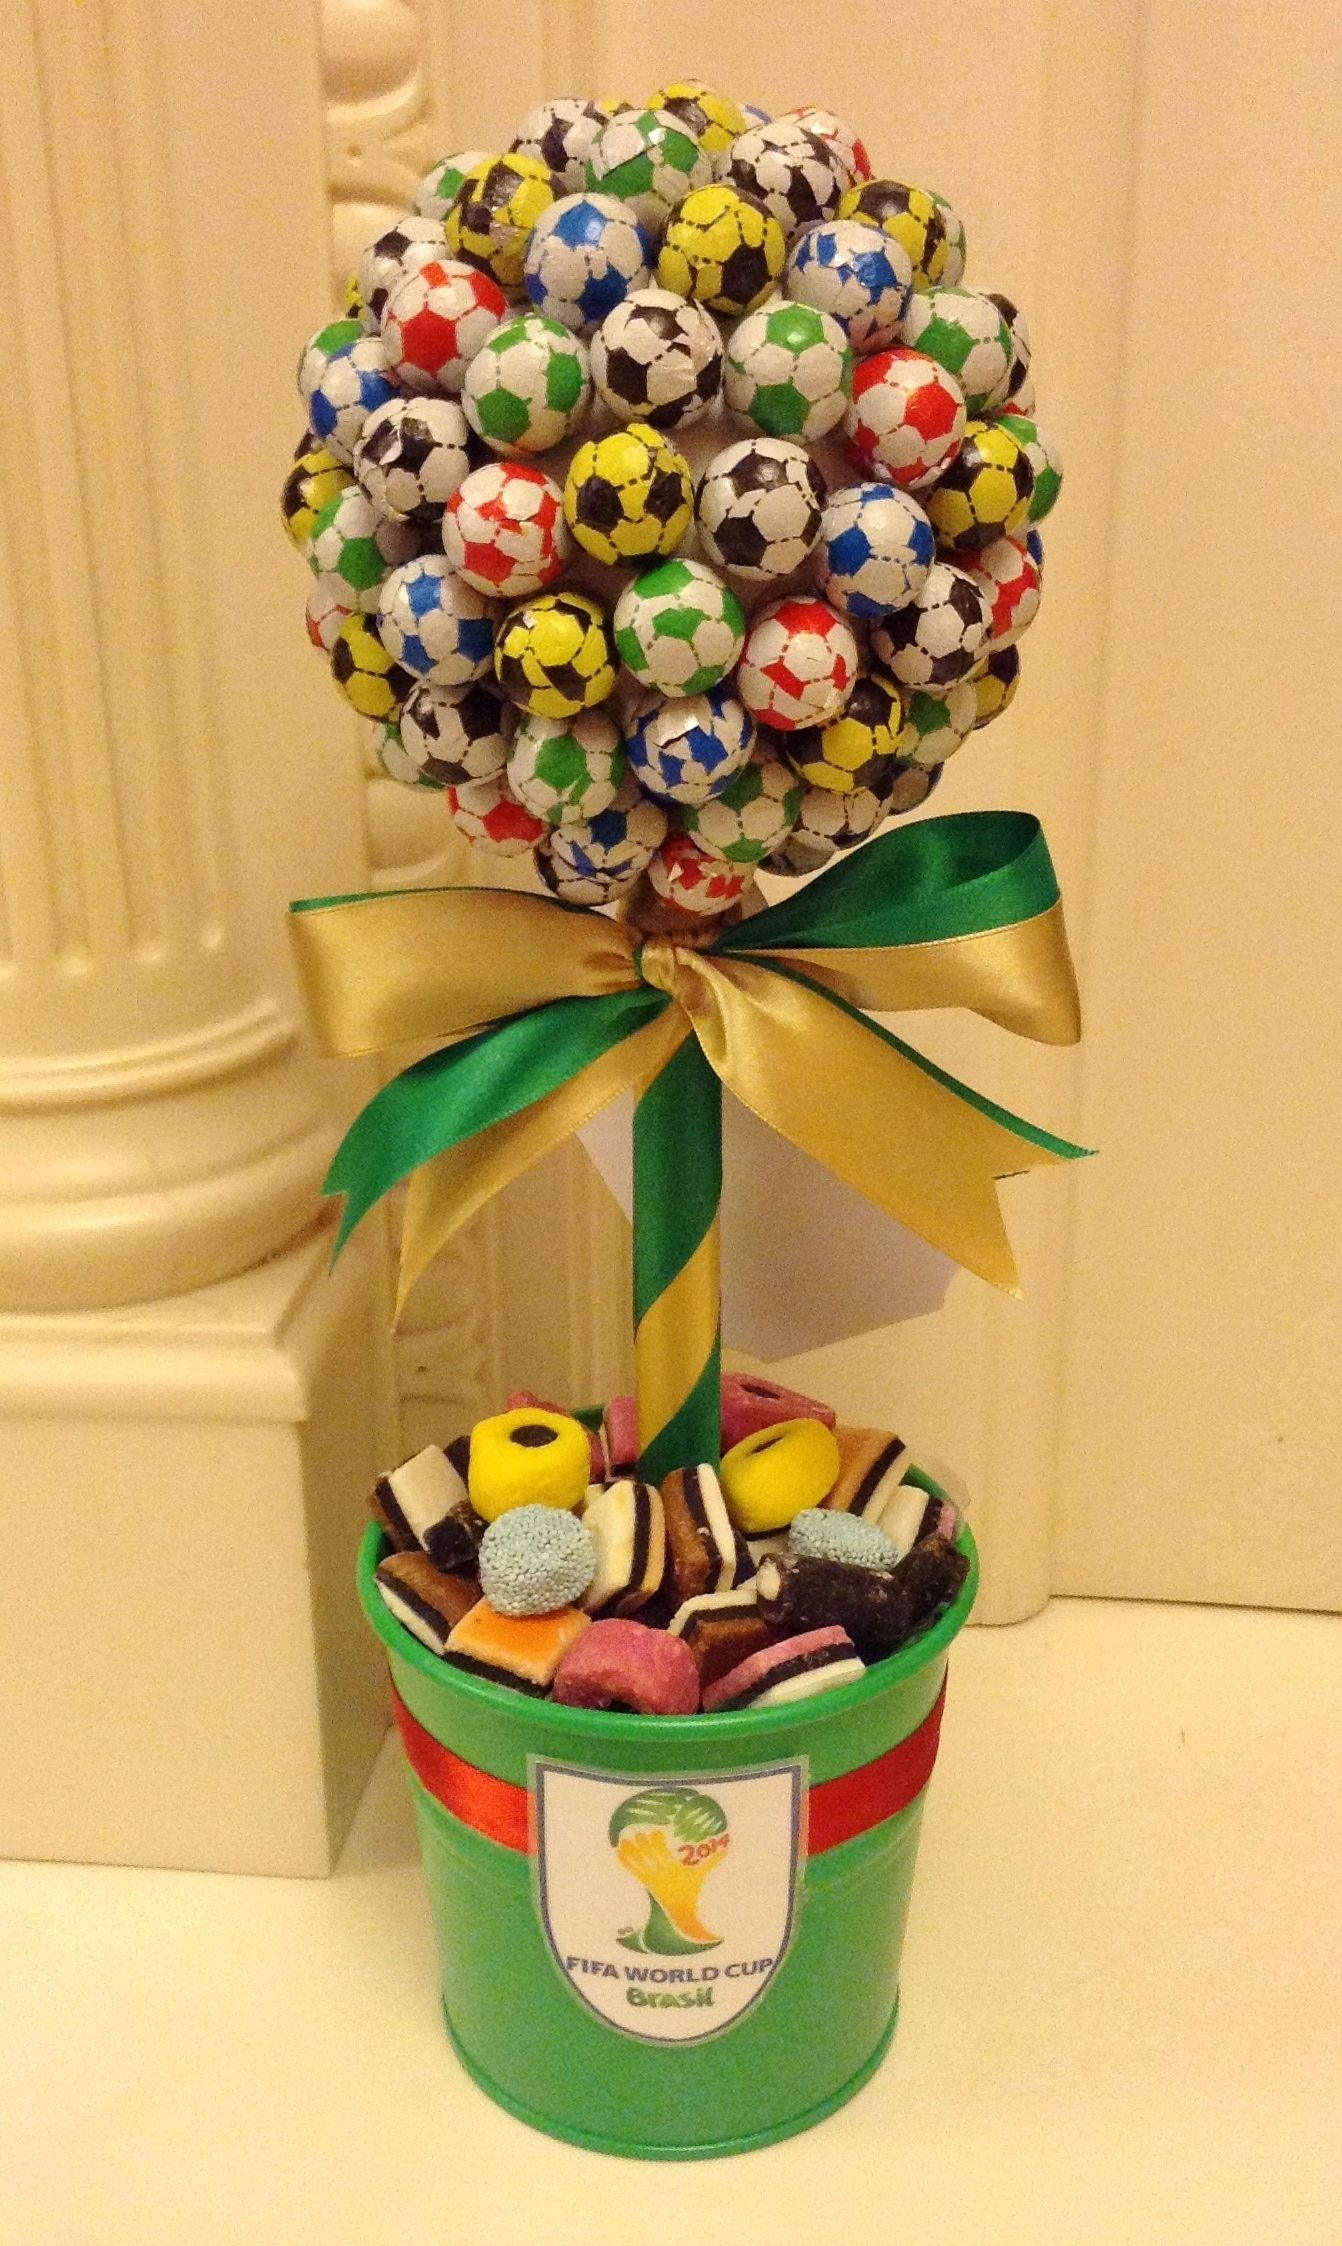 World cup brazil chocolate footballs candy tree www world cup brazil chocolate footballs candy tree candytreescambridge uk izmirmasajfo Gallery